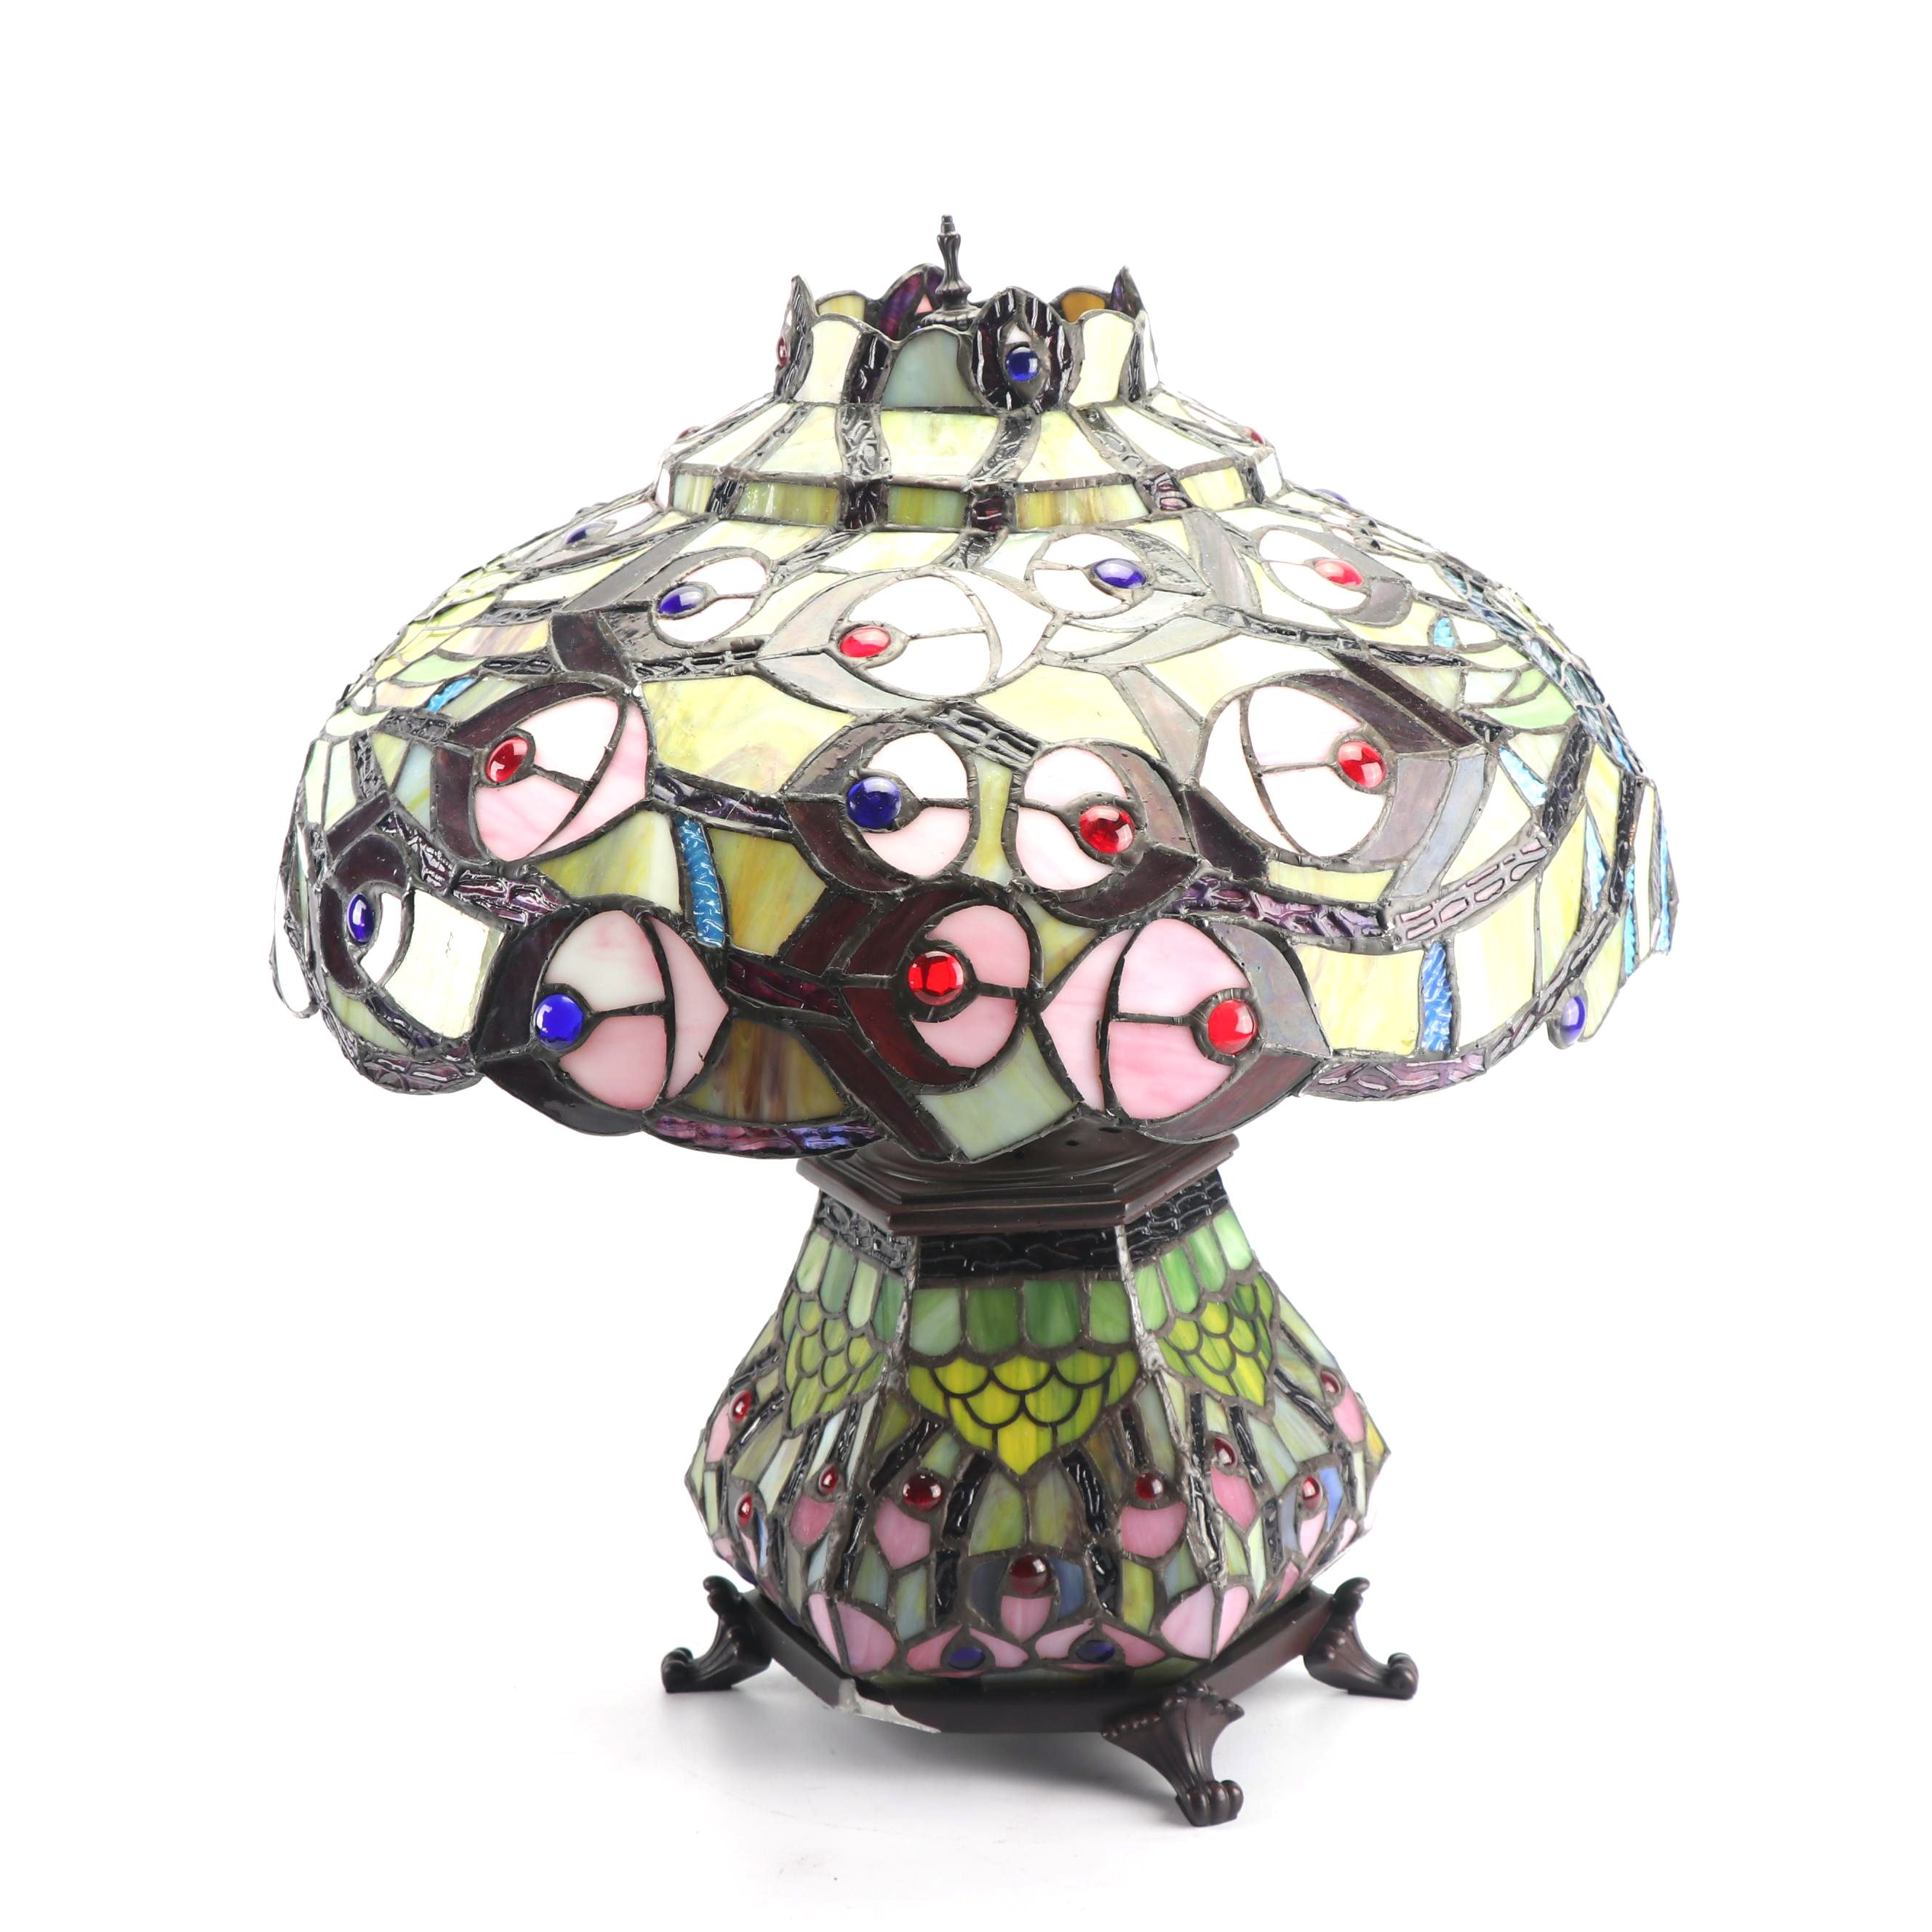 Contemporary Slag Glass Lamp with Peacock Motif